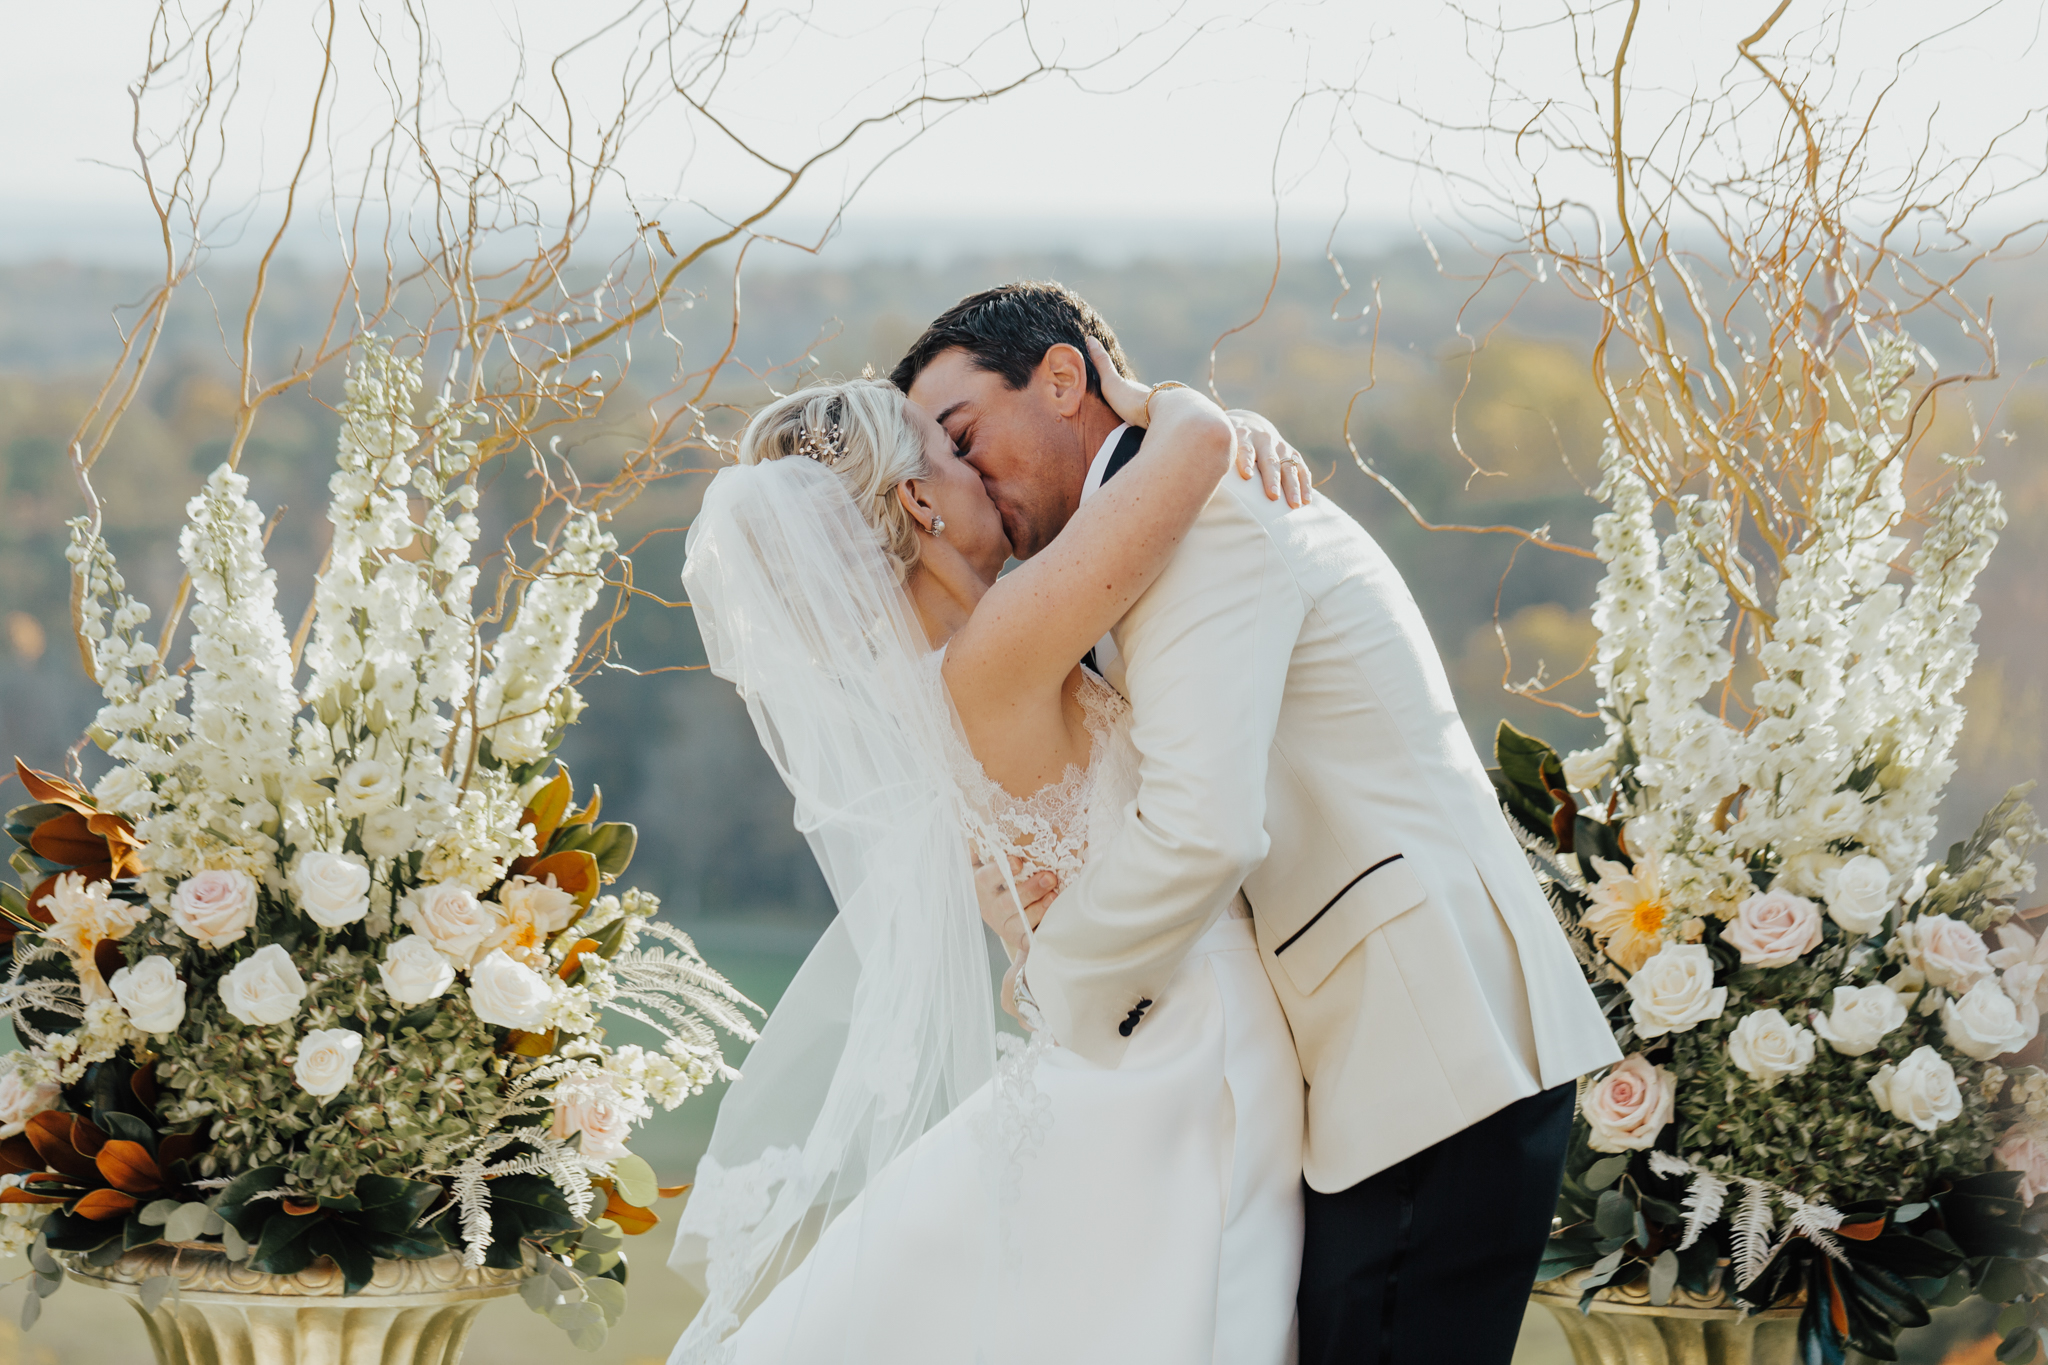 couples first kiss wedding